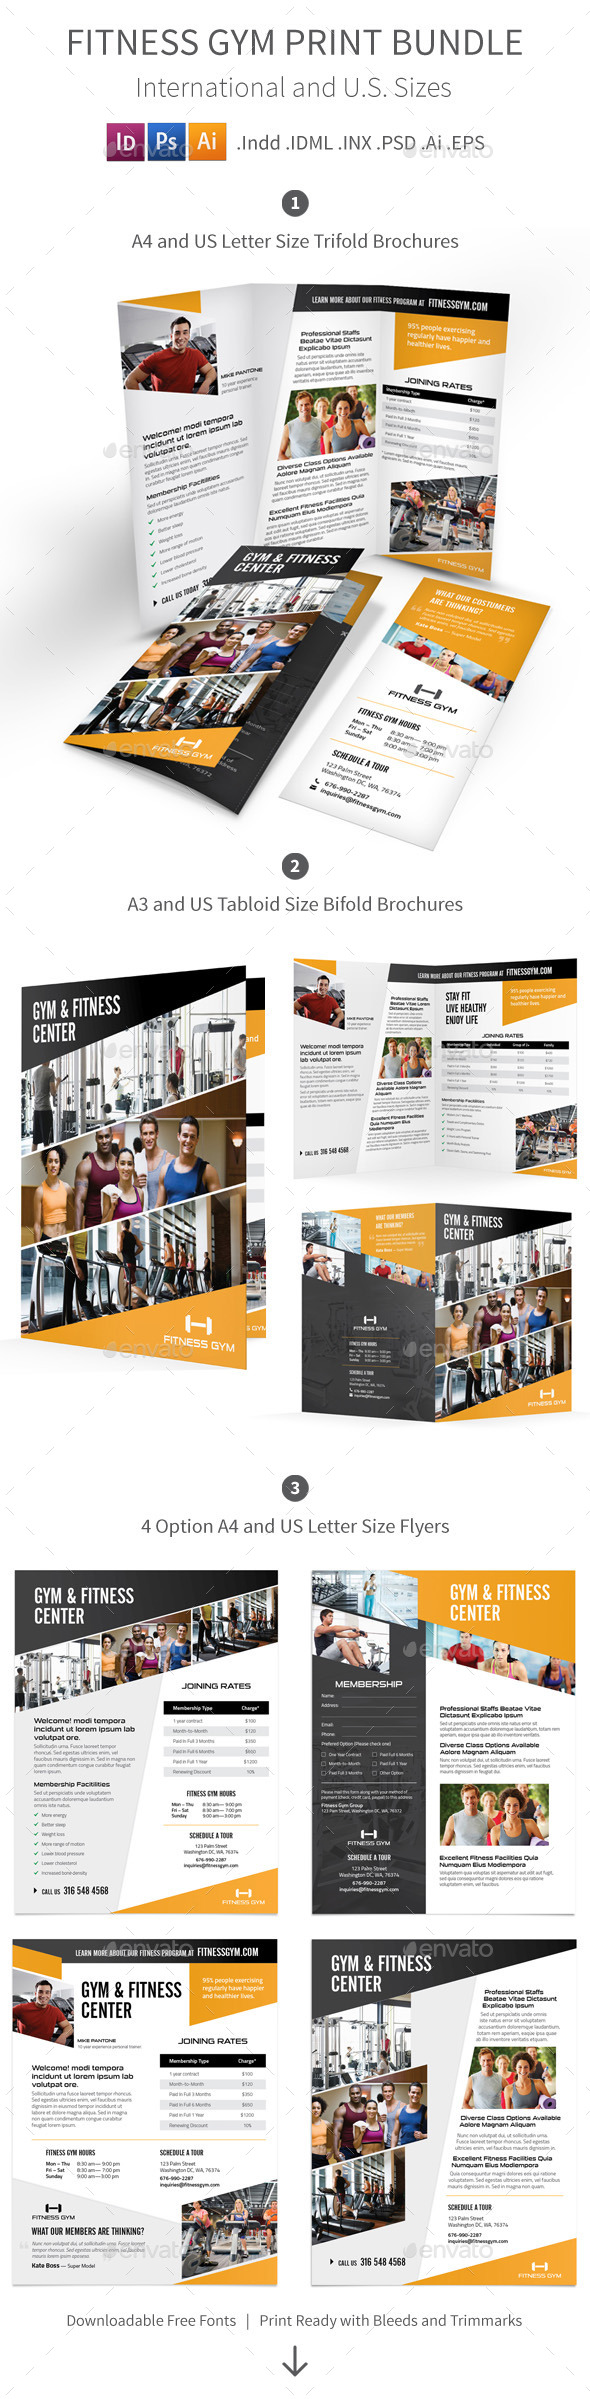 GraphicRiver Fitness Gym Print Bundle 8844134